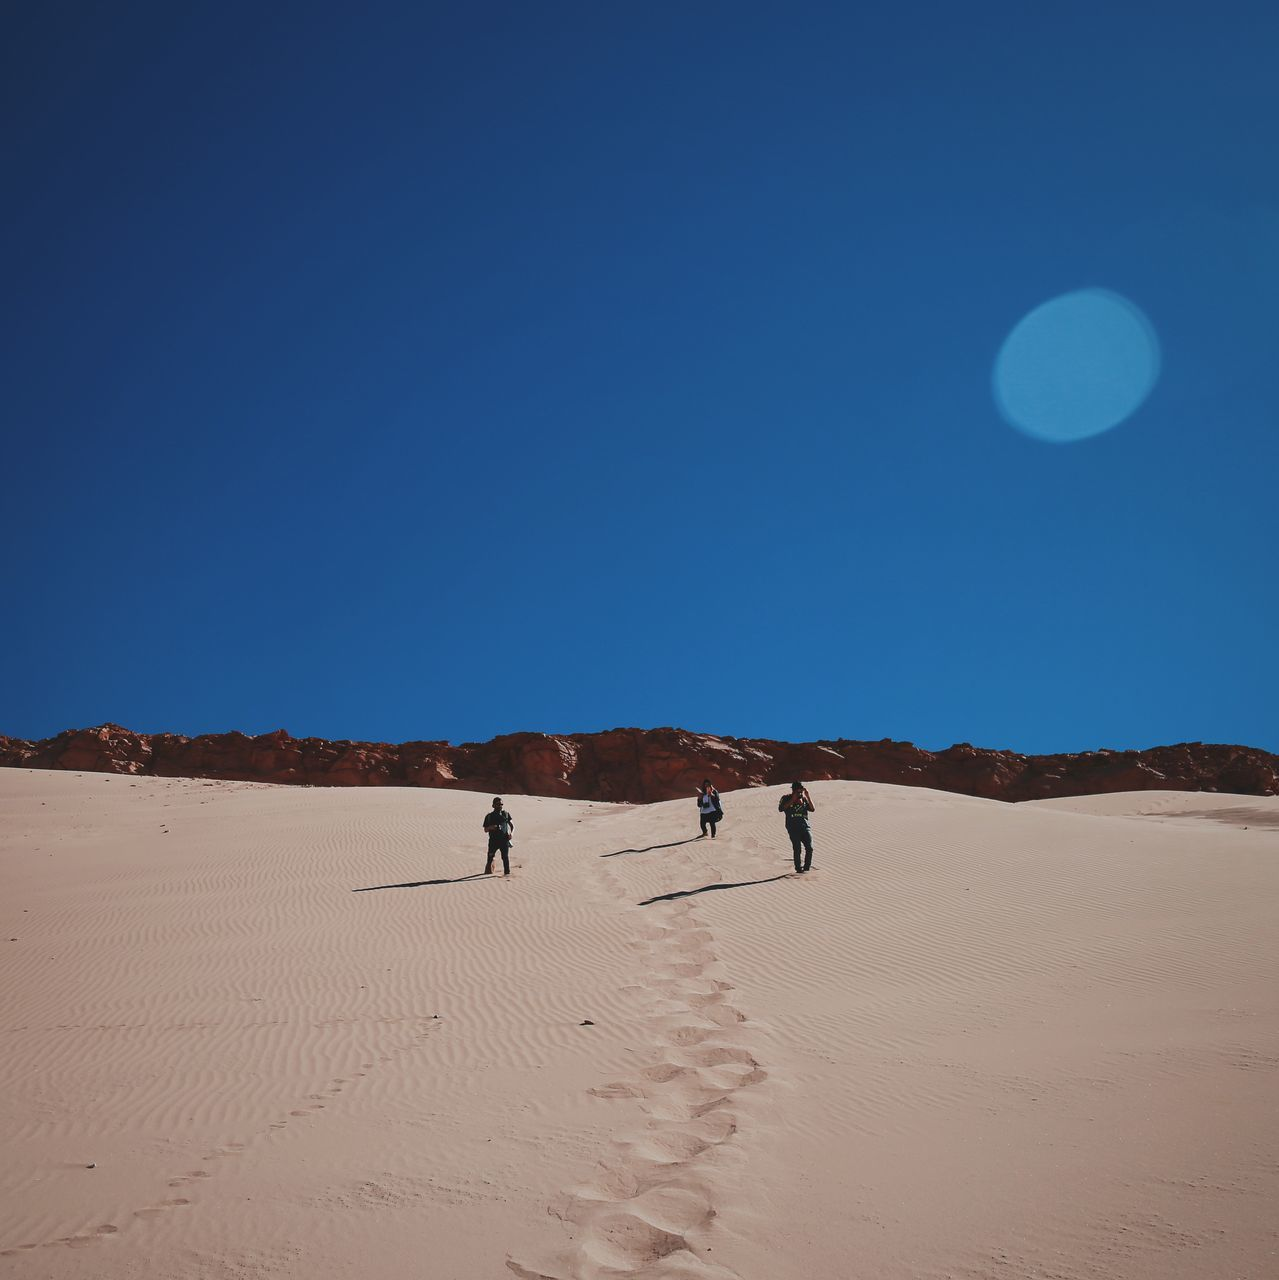 People Standing On Sand With Sky In Background